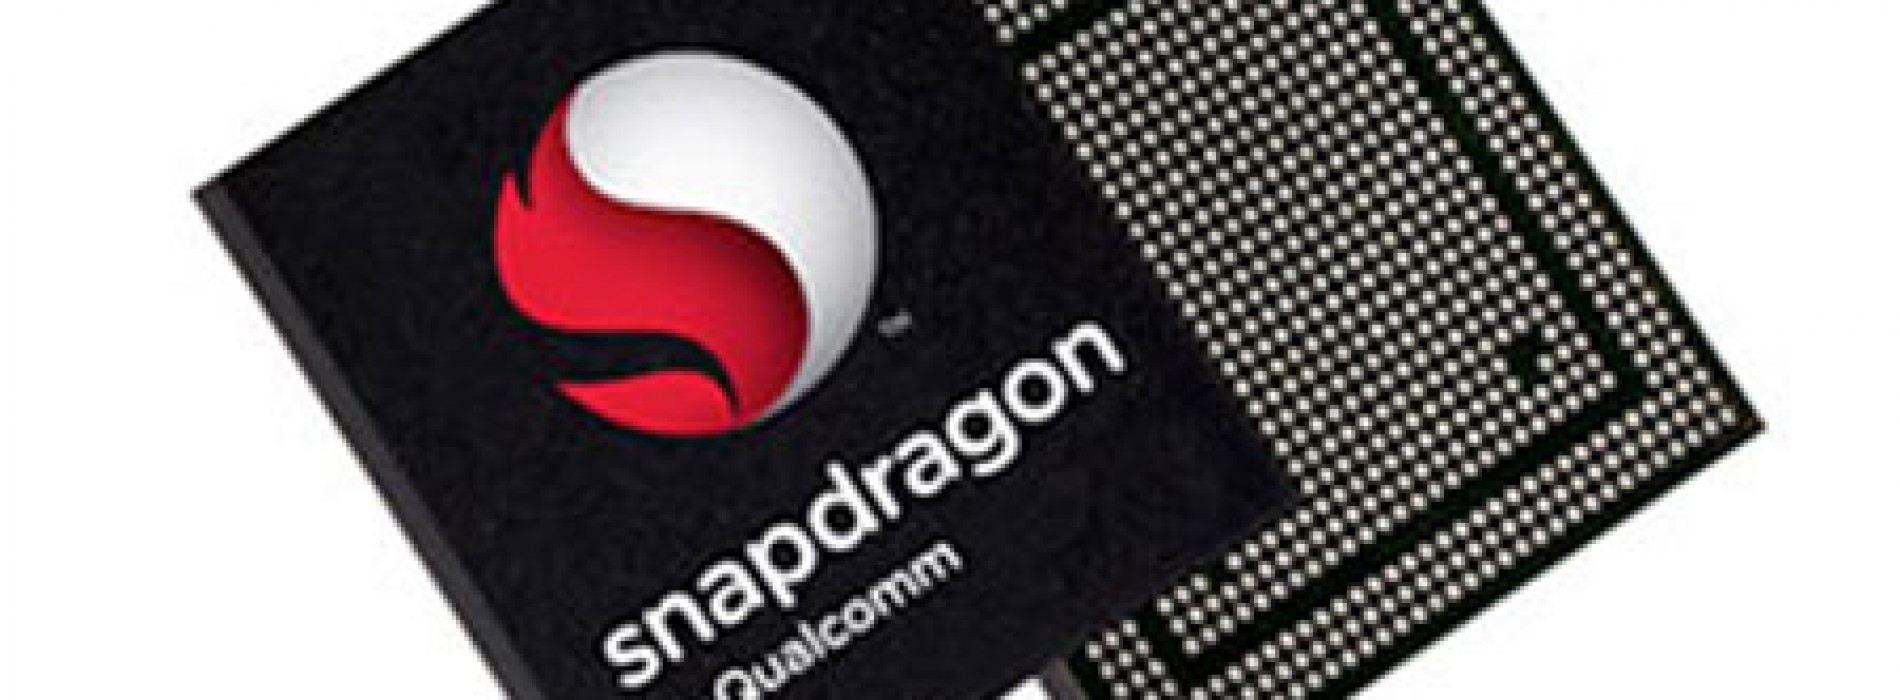 Quad-core 2.5GHz Snapdragon CPU spotted in benchmarks